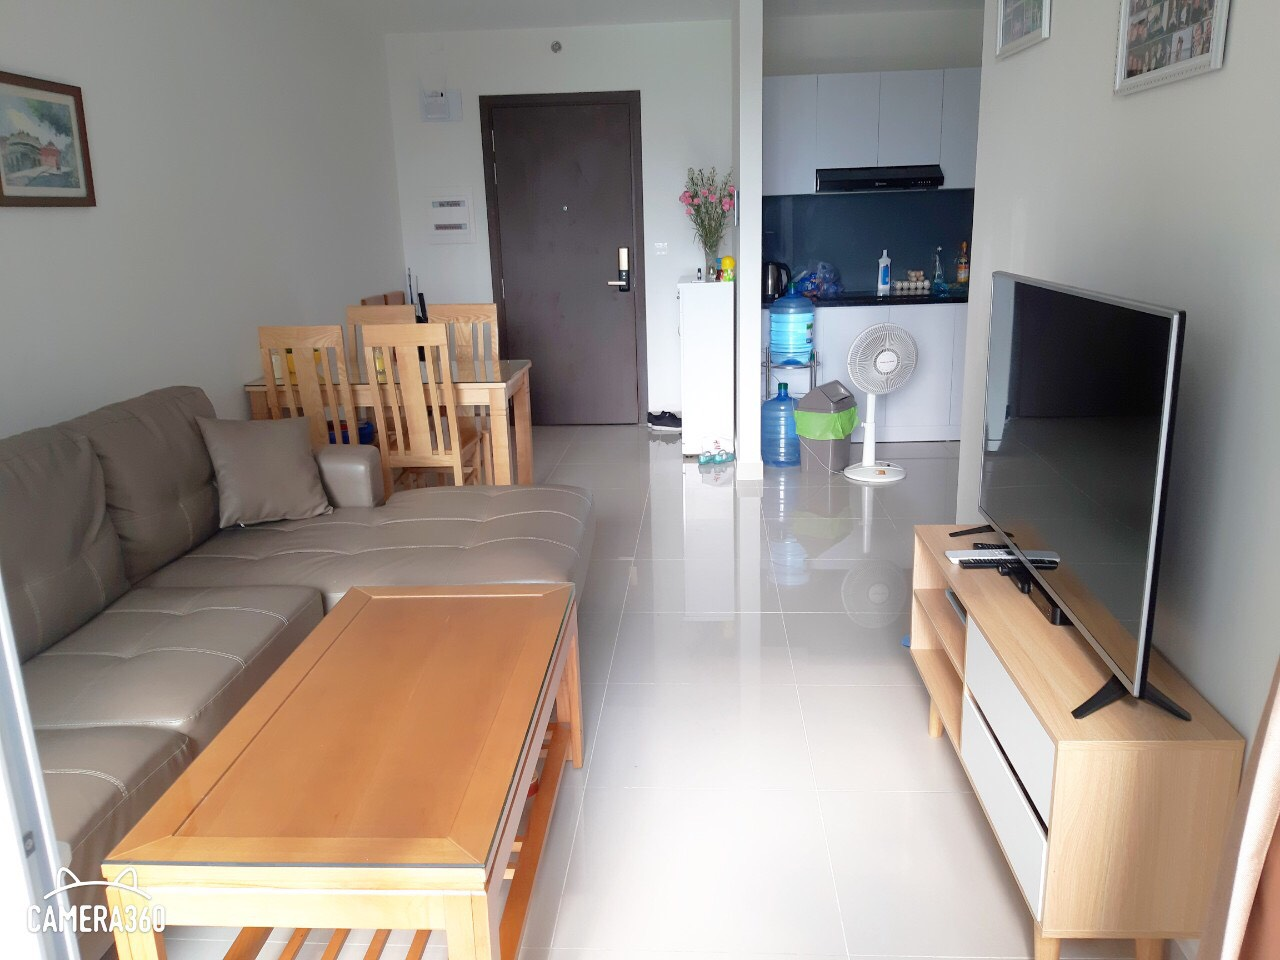 sale Sunrise Riverside - 2 bedroom - 2 wc